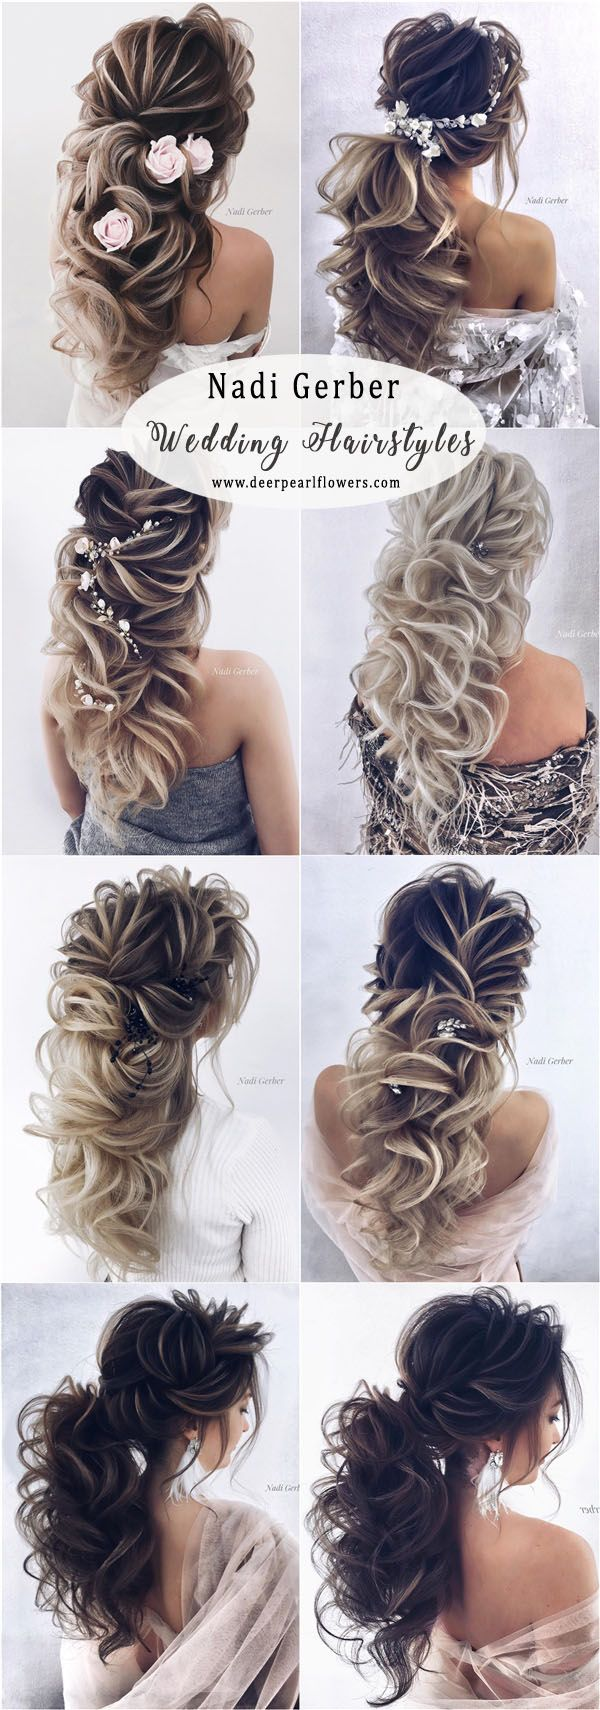 3195 best Wedding Hairstyles images on Pinterest | Bridal hairstyle ...